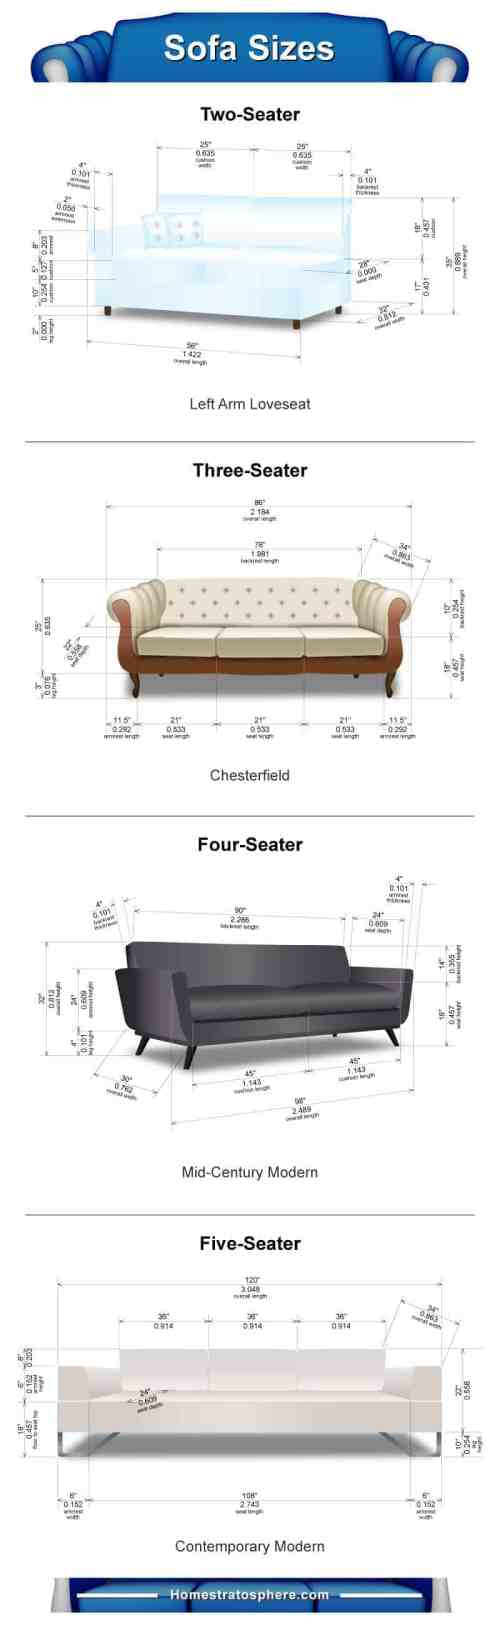 small resolution of diagrams showing the proper couch dimensions according to the number of people it seats